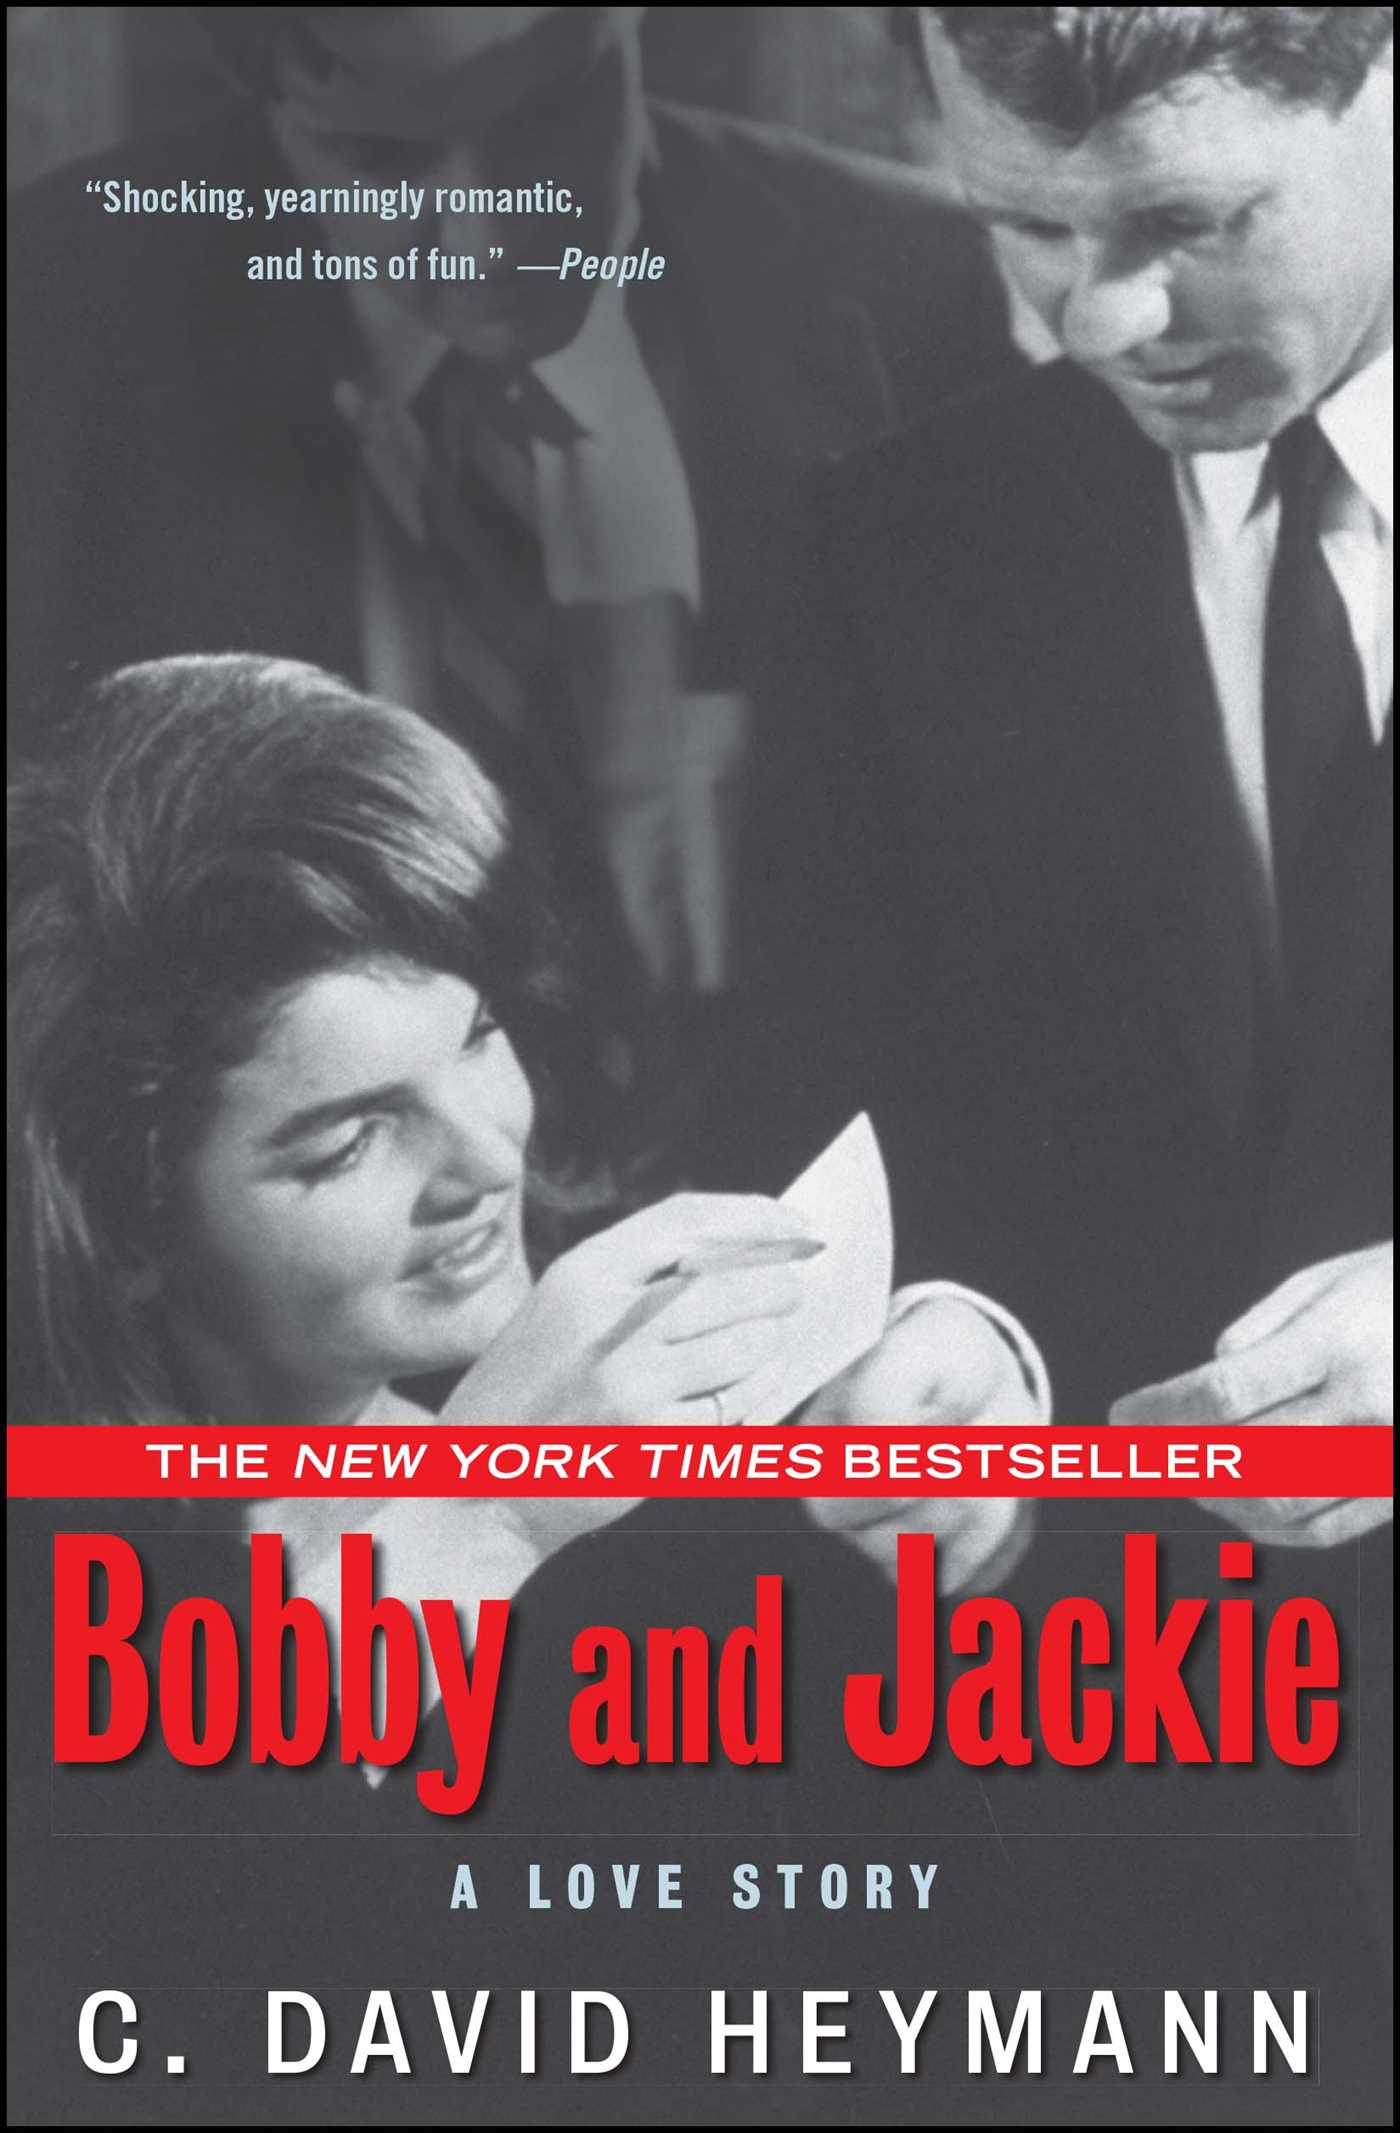 Bobby and jackie 9781416556299 hr